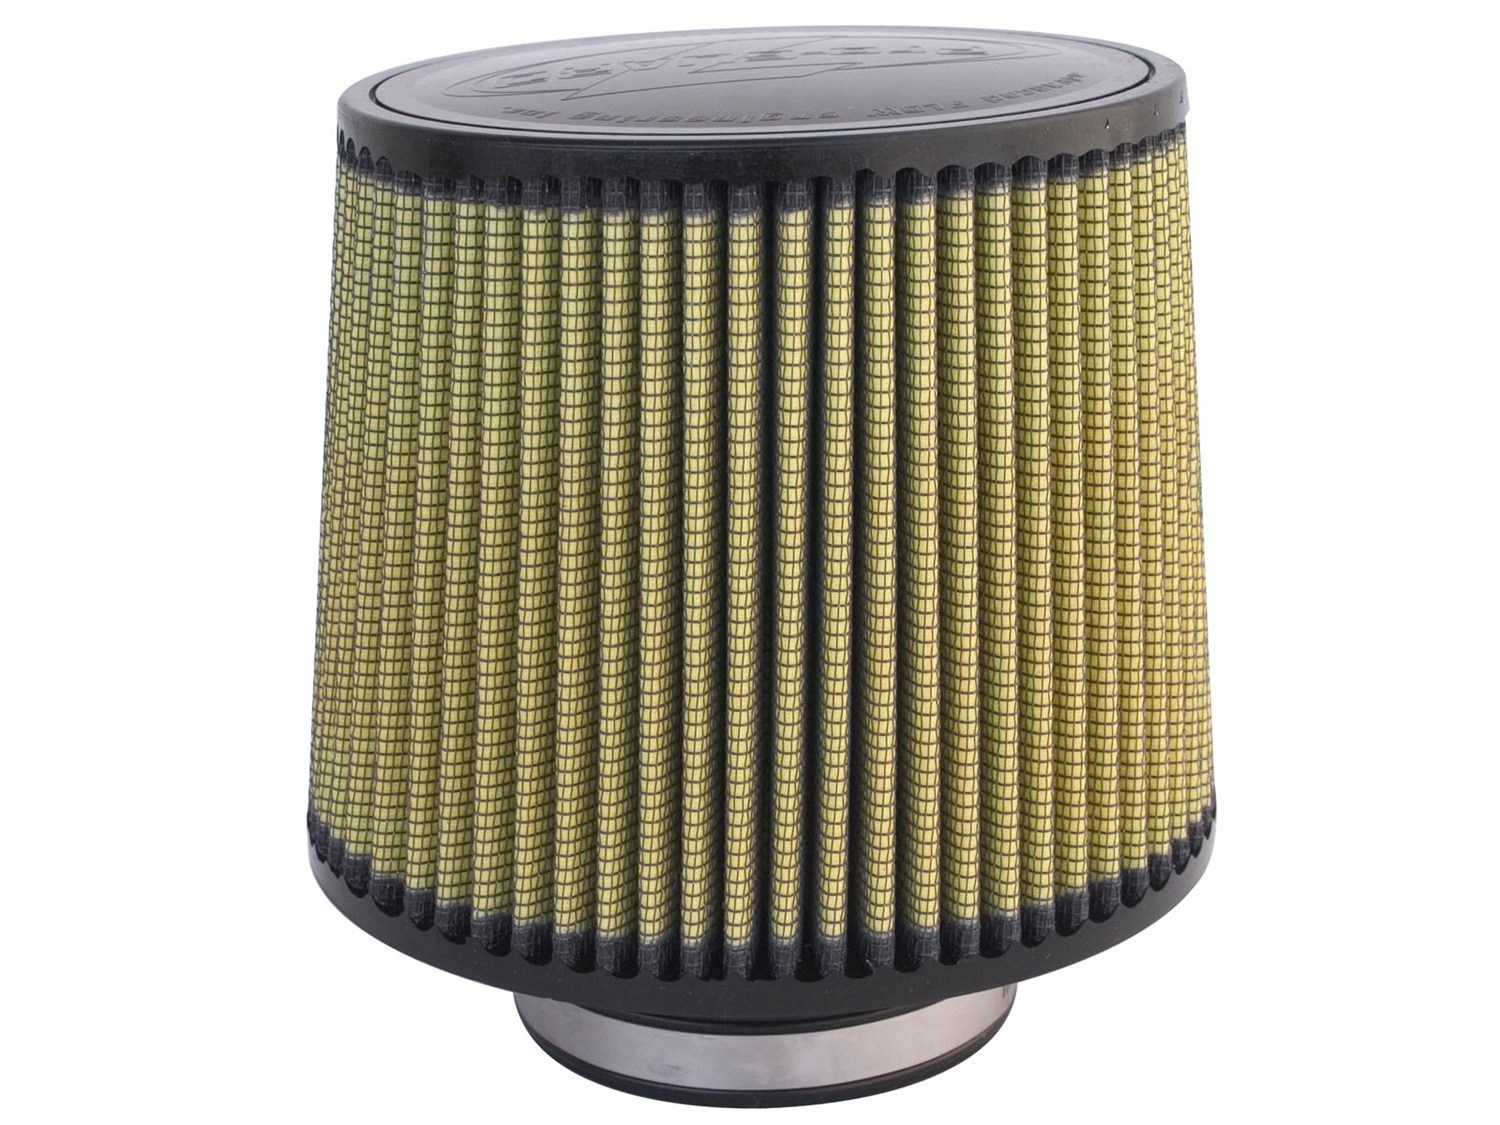 aFe Power 72-90008 MagnumFLOW Intake Pro-GUARD 7 Air Filter 72-90008